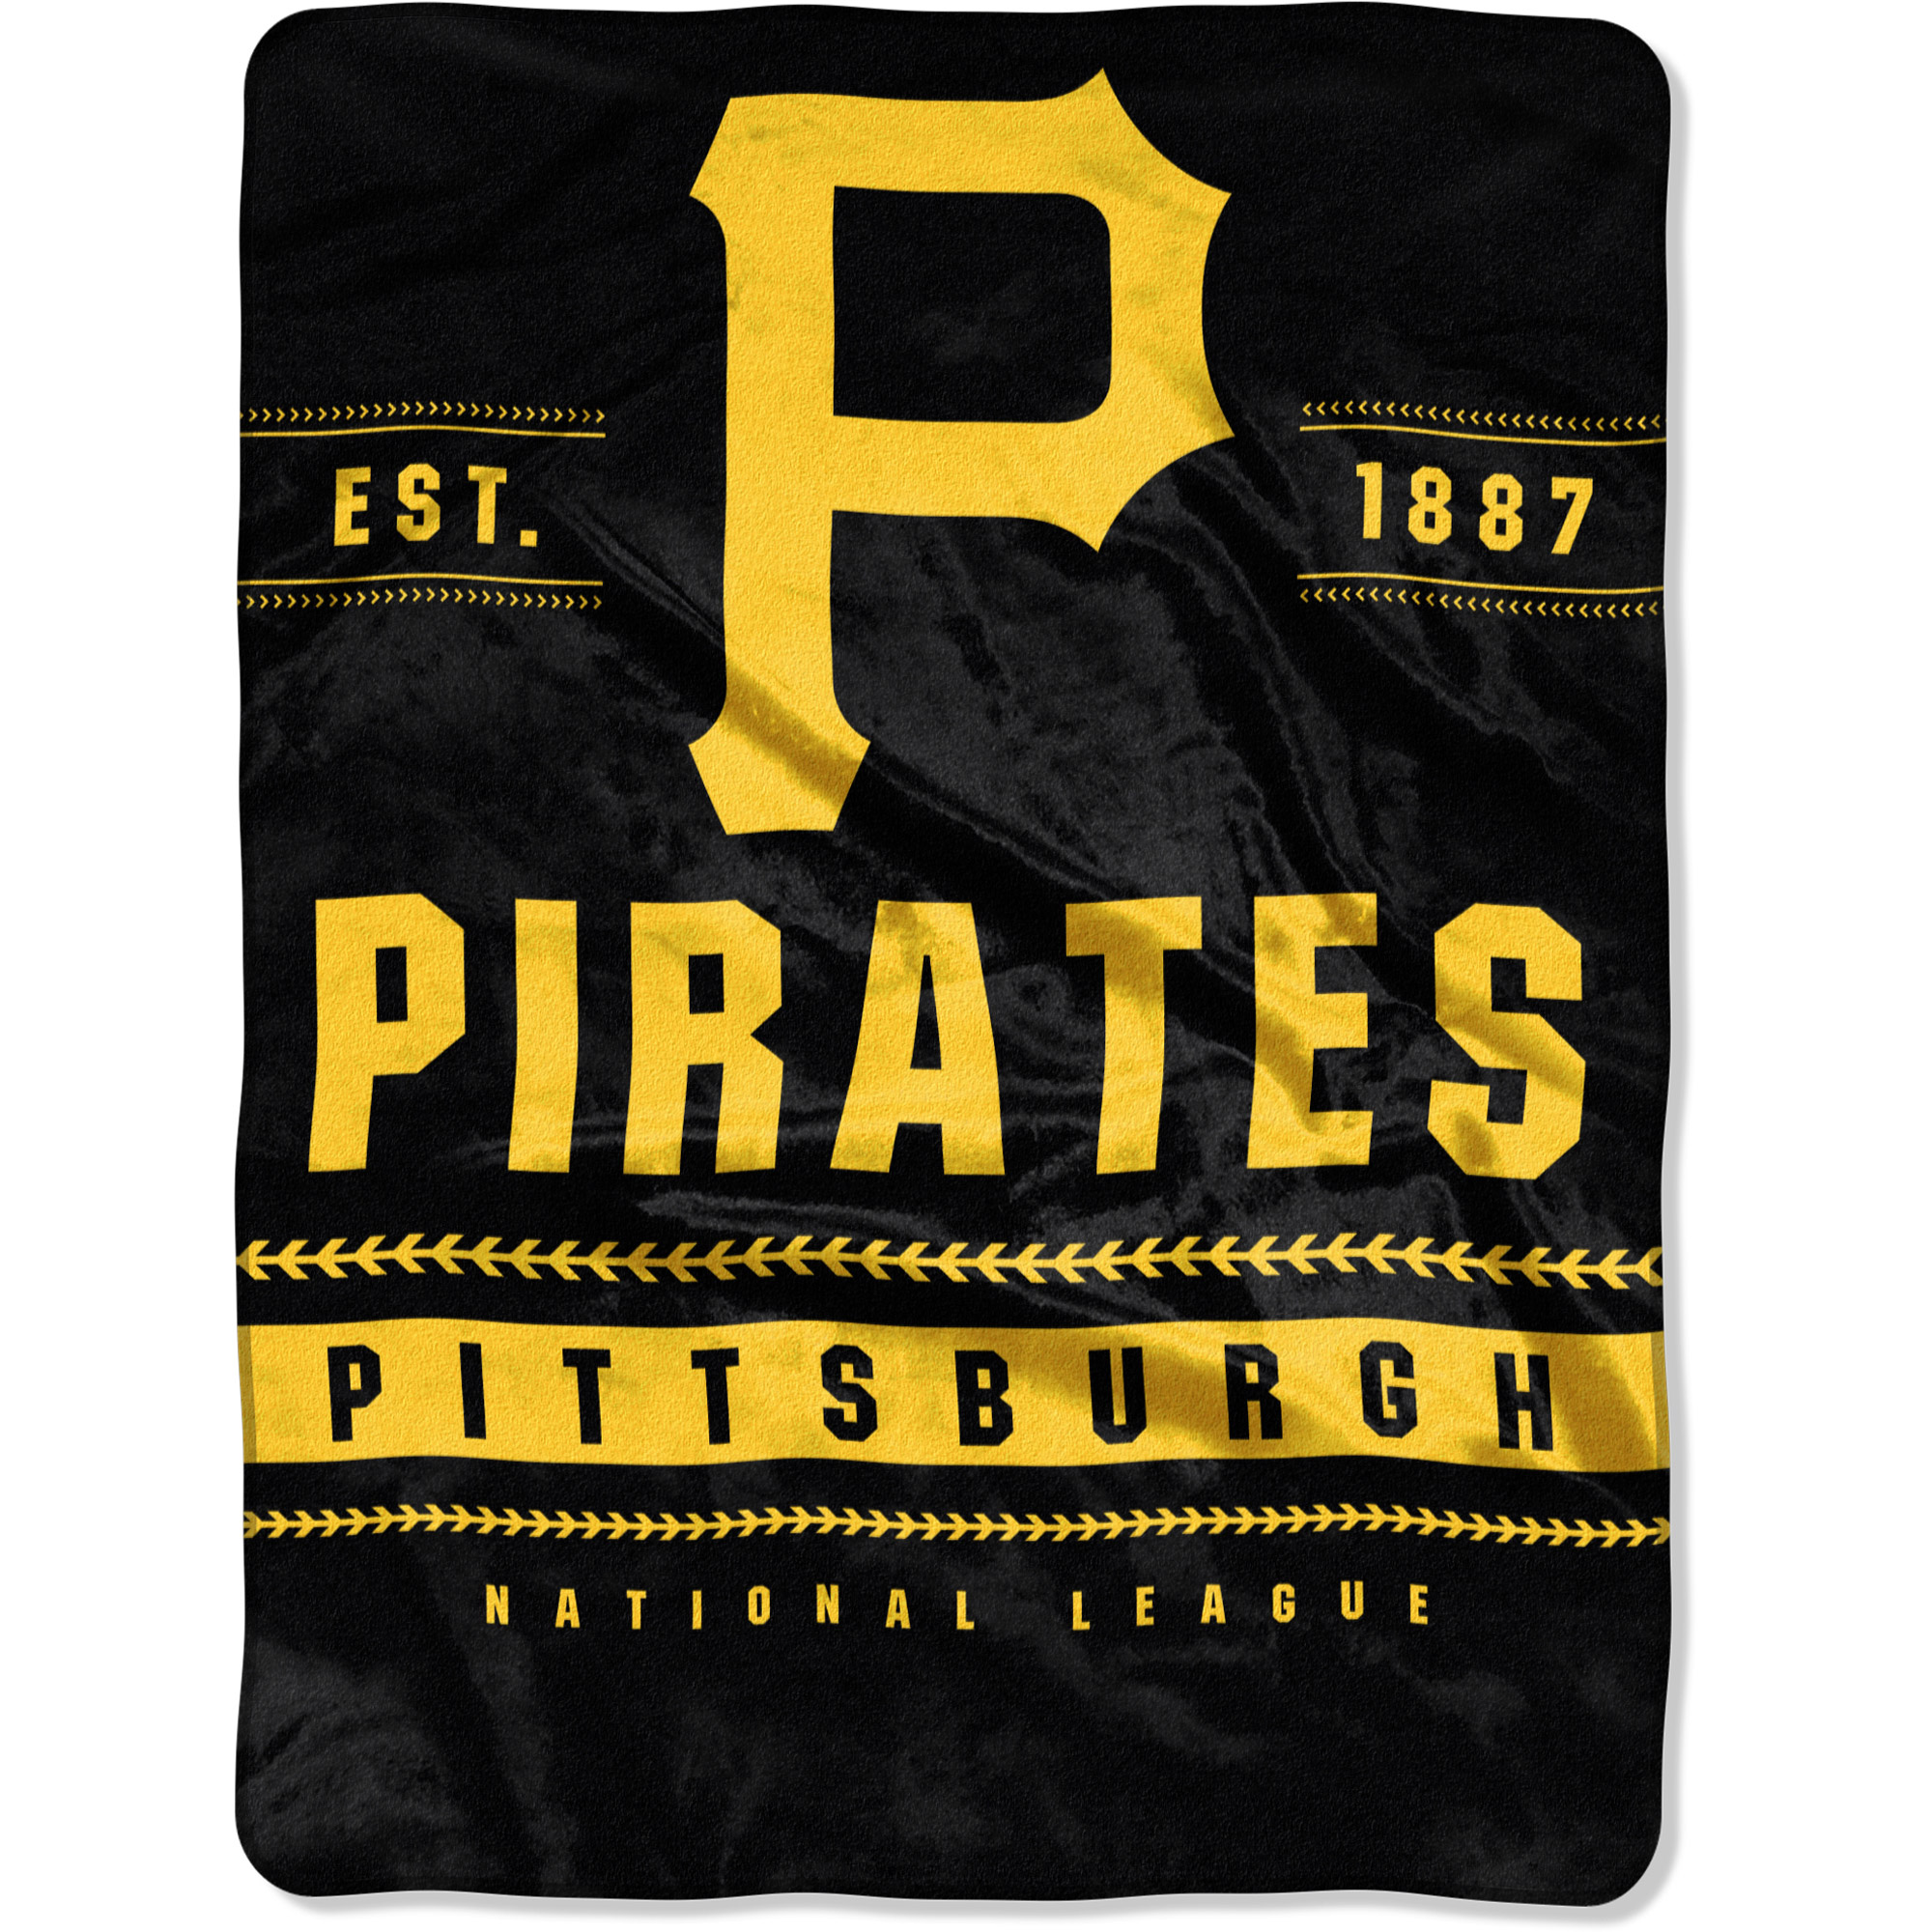 "Pittsburgh Pirates The Northwest Company 60"" x 80"" Backstop Silk Touch Throw Blanket - No Size"